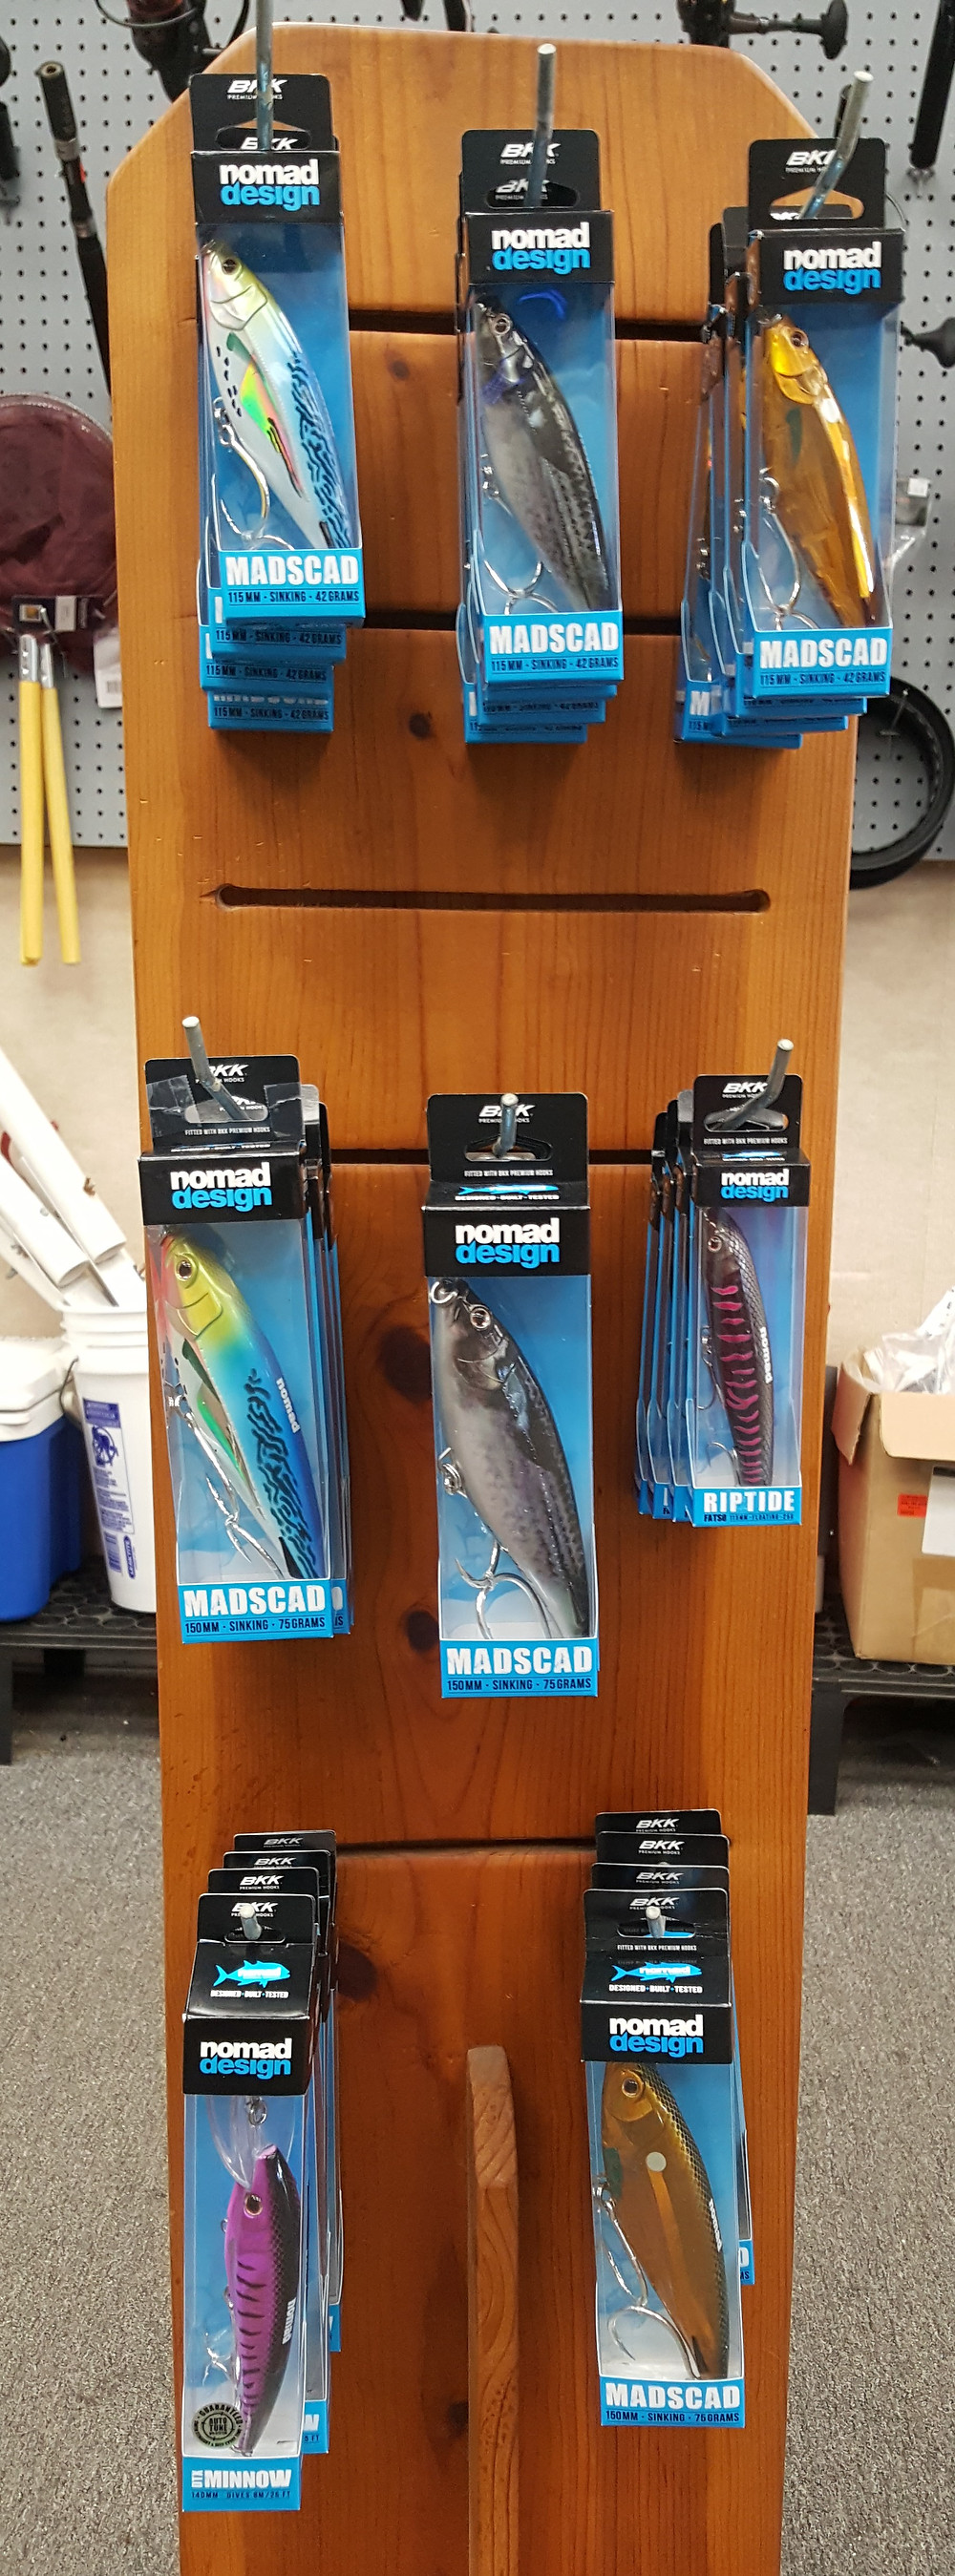 We have a great selection of new lures that will make perfect stocking stuffers, including a new selection of Nomad stick baits. Come in and check them out.